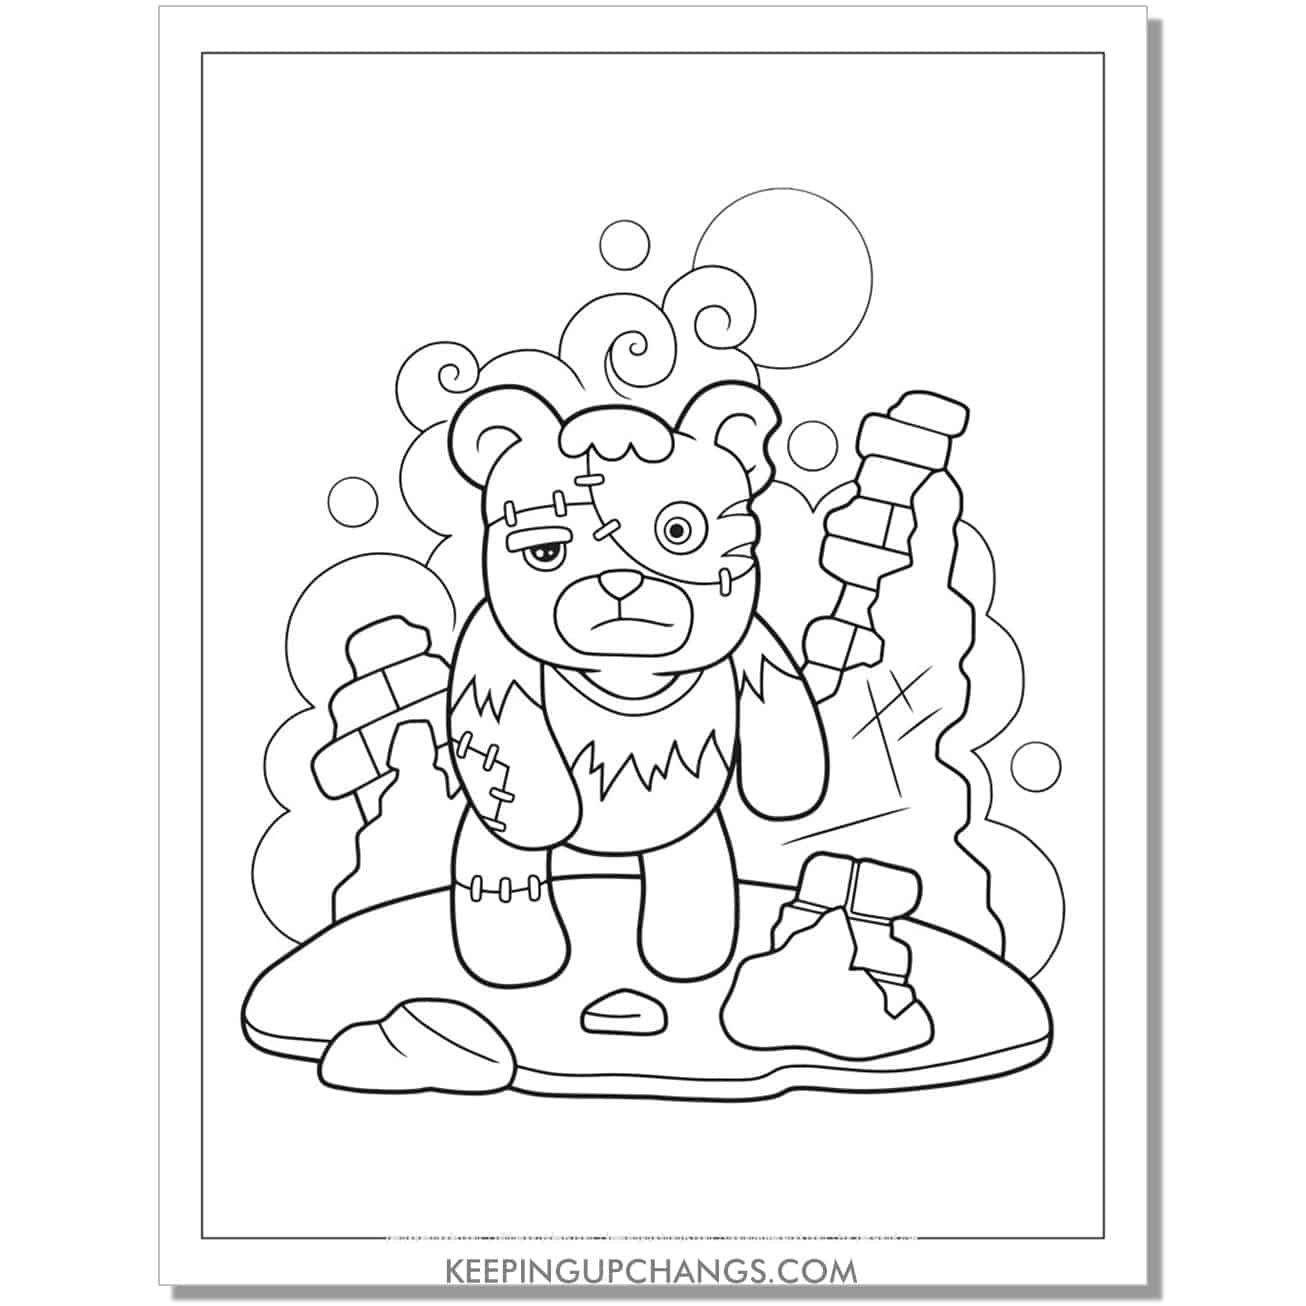 free zombie teddy bear coloring page.